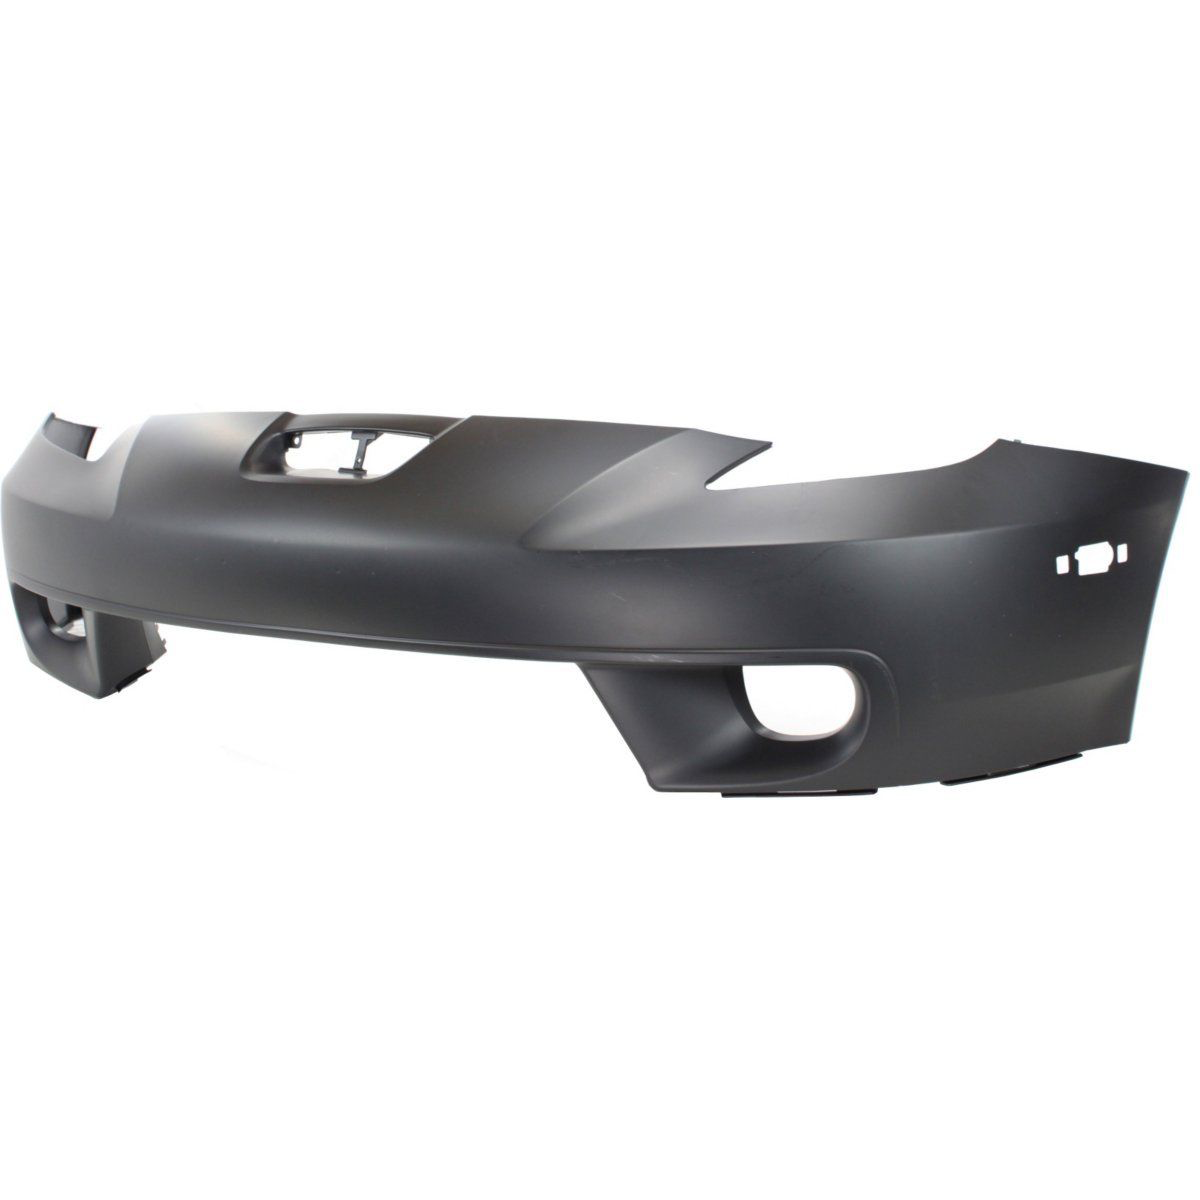 2000-2002 TOYOTA CELICA Front Bumper Cover Painted to Match